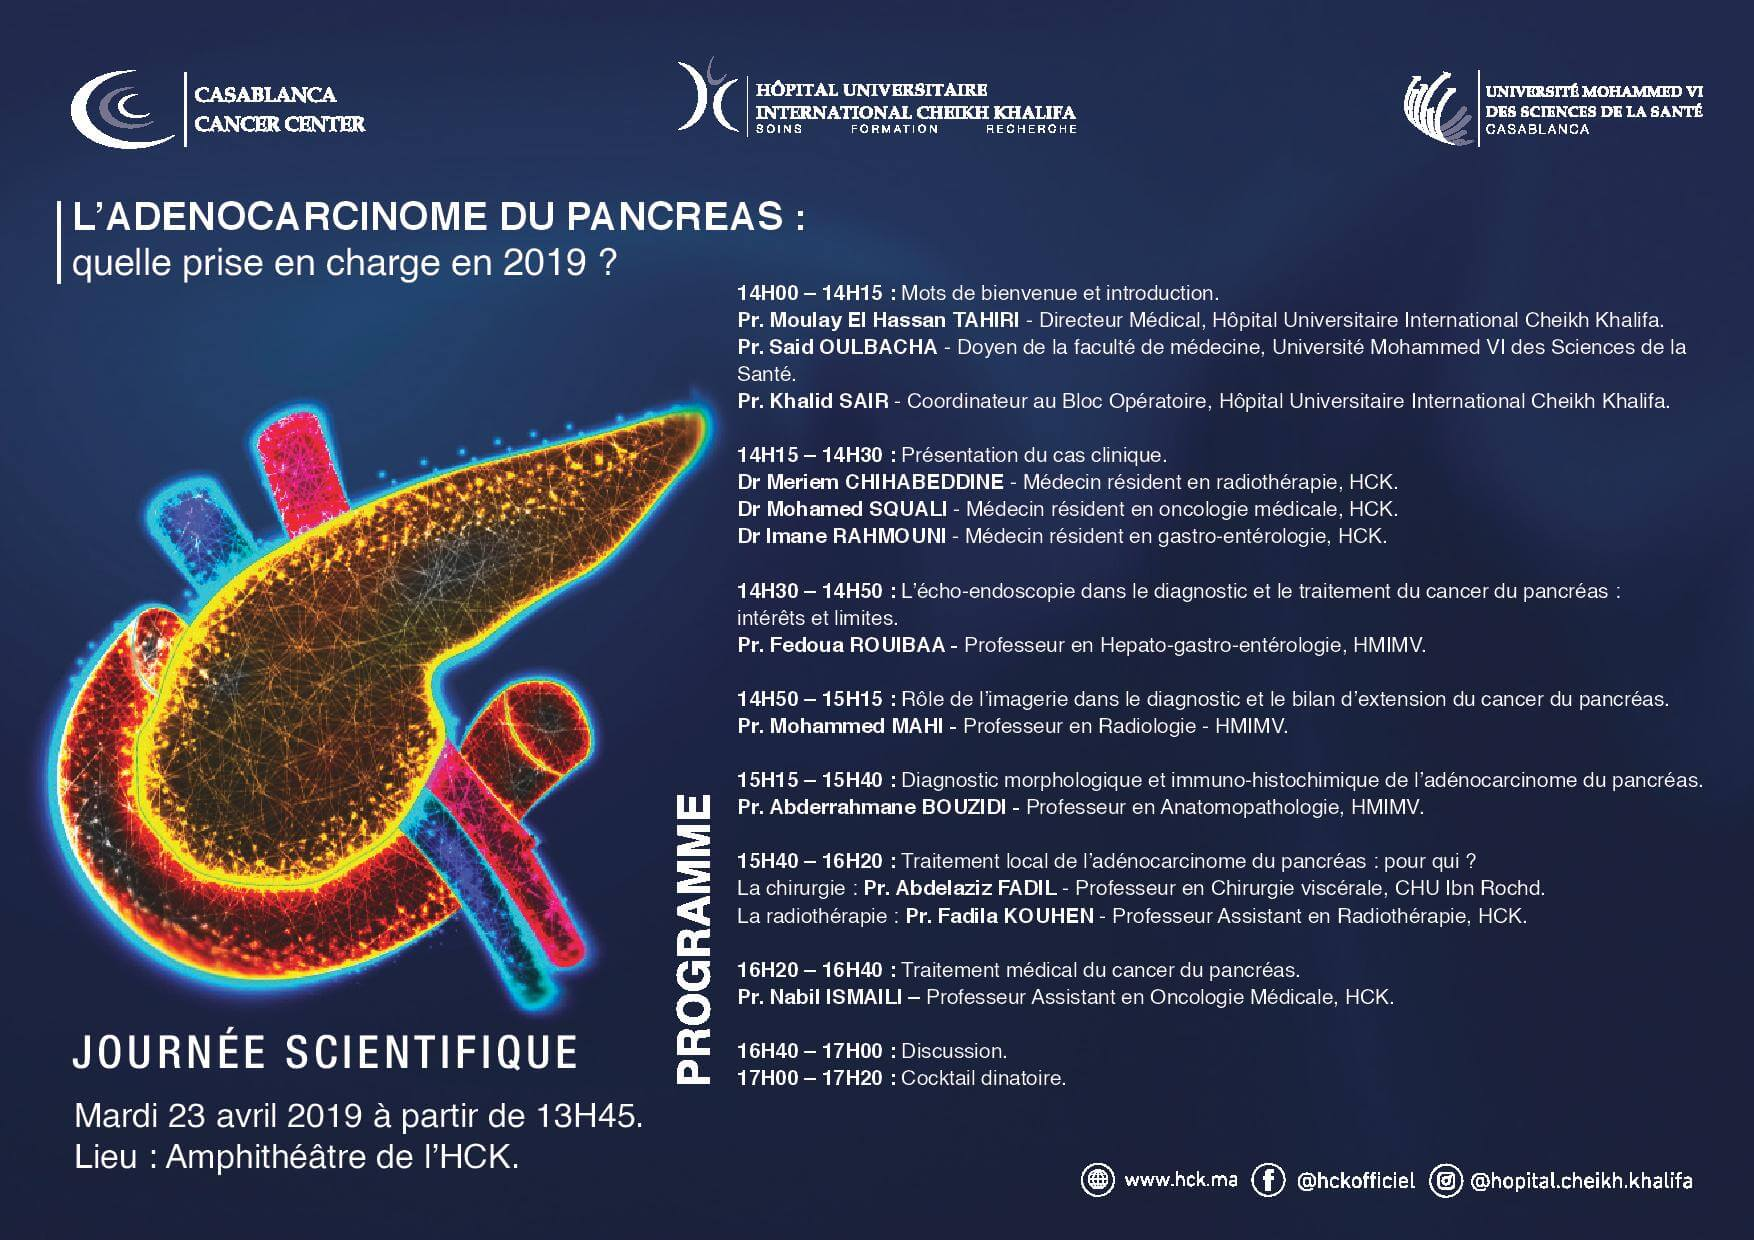 Programme-journee scientifique cancer du pancreas 23.04.2019 hck